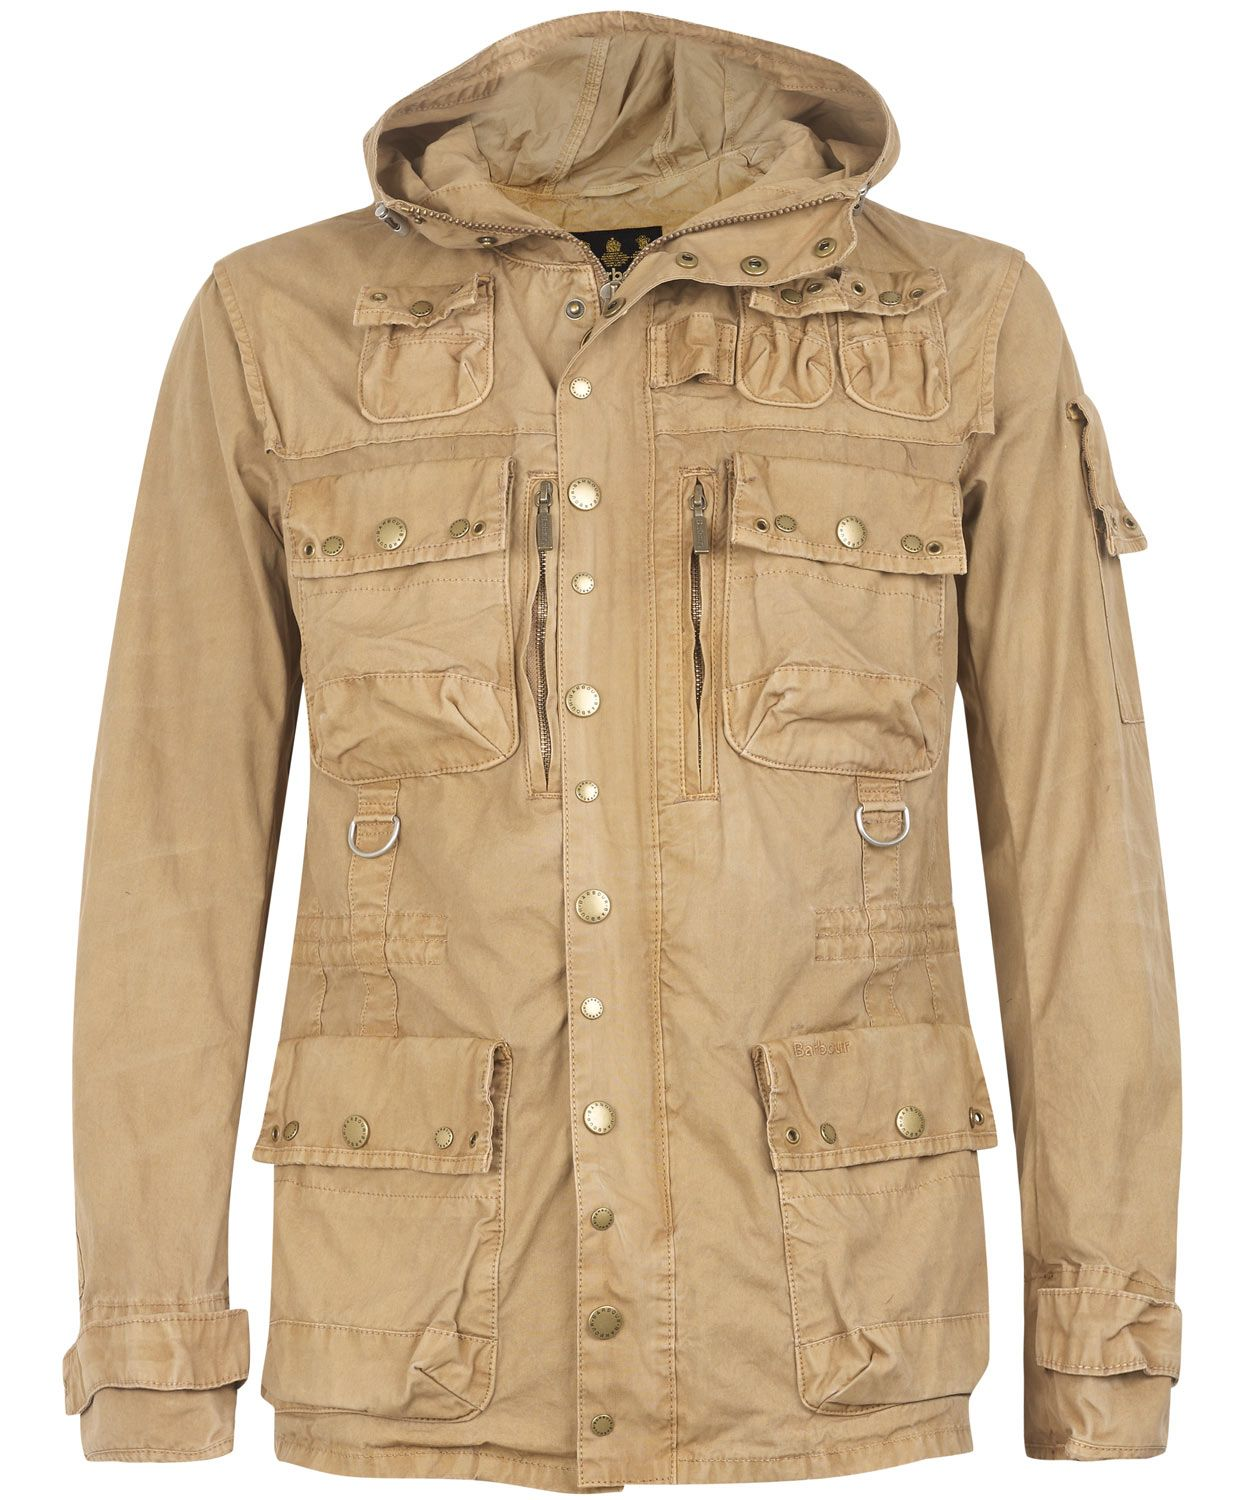 15a93c73e52a4 Image result for vintage hunting jacket | Into the Woods | Hunting ...